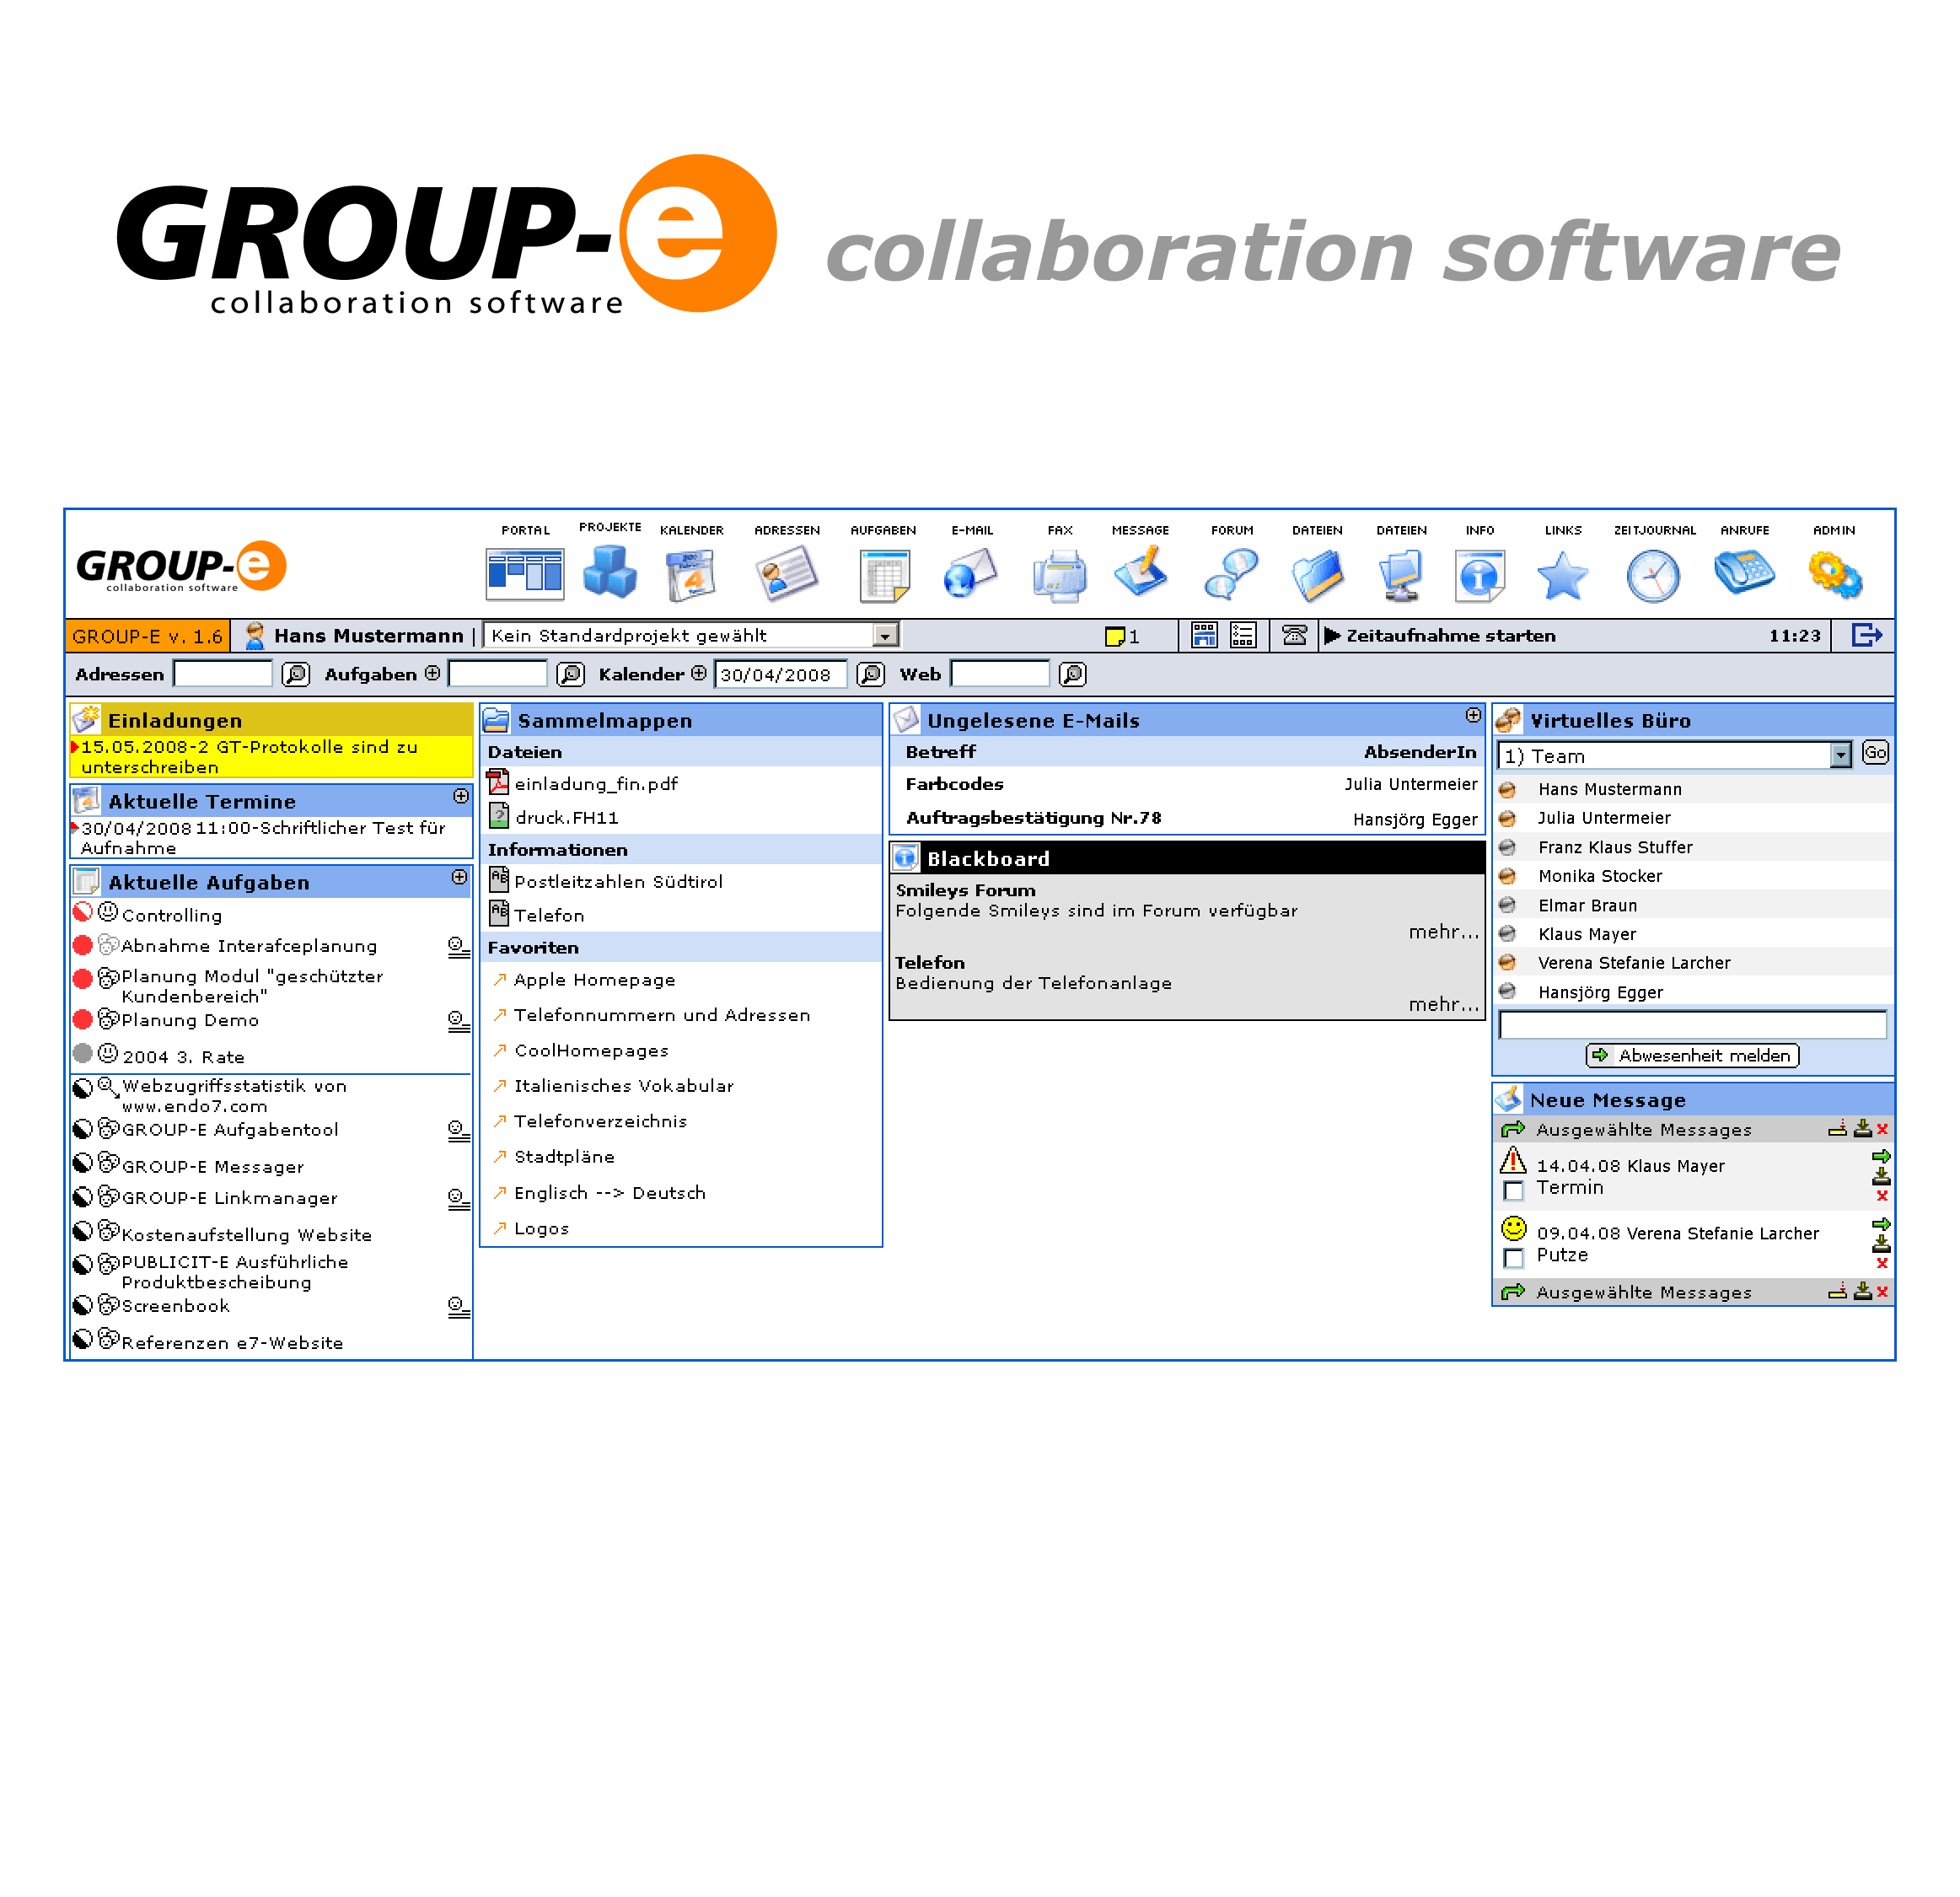 Effiziente Teamarbeit durch webbasierte Collaboration Software GROUP-E ist die effiziente Basis für optimale Teamarbeit.